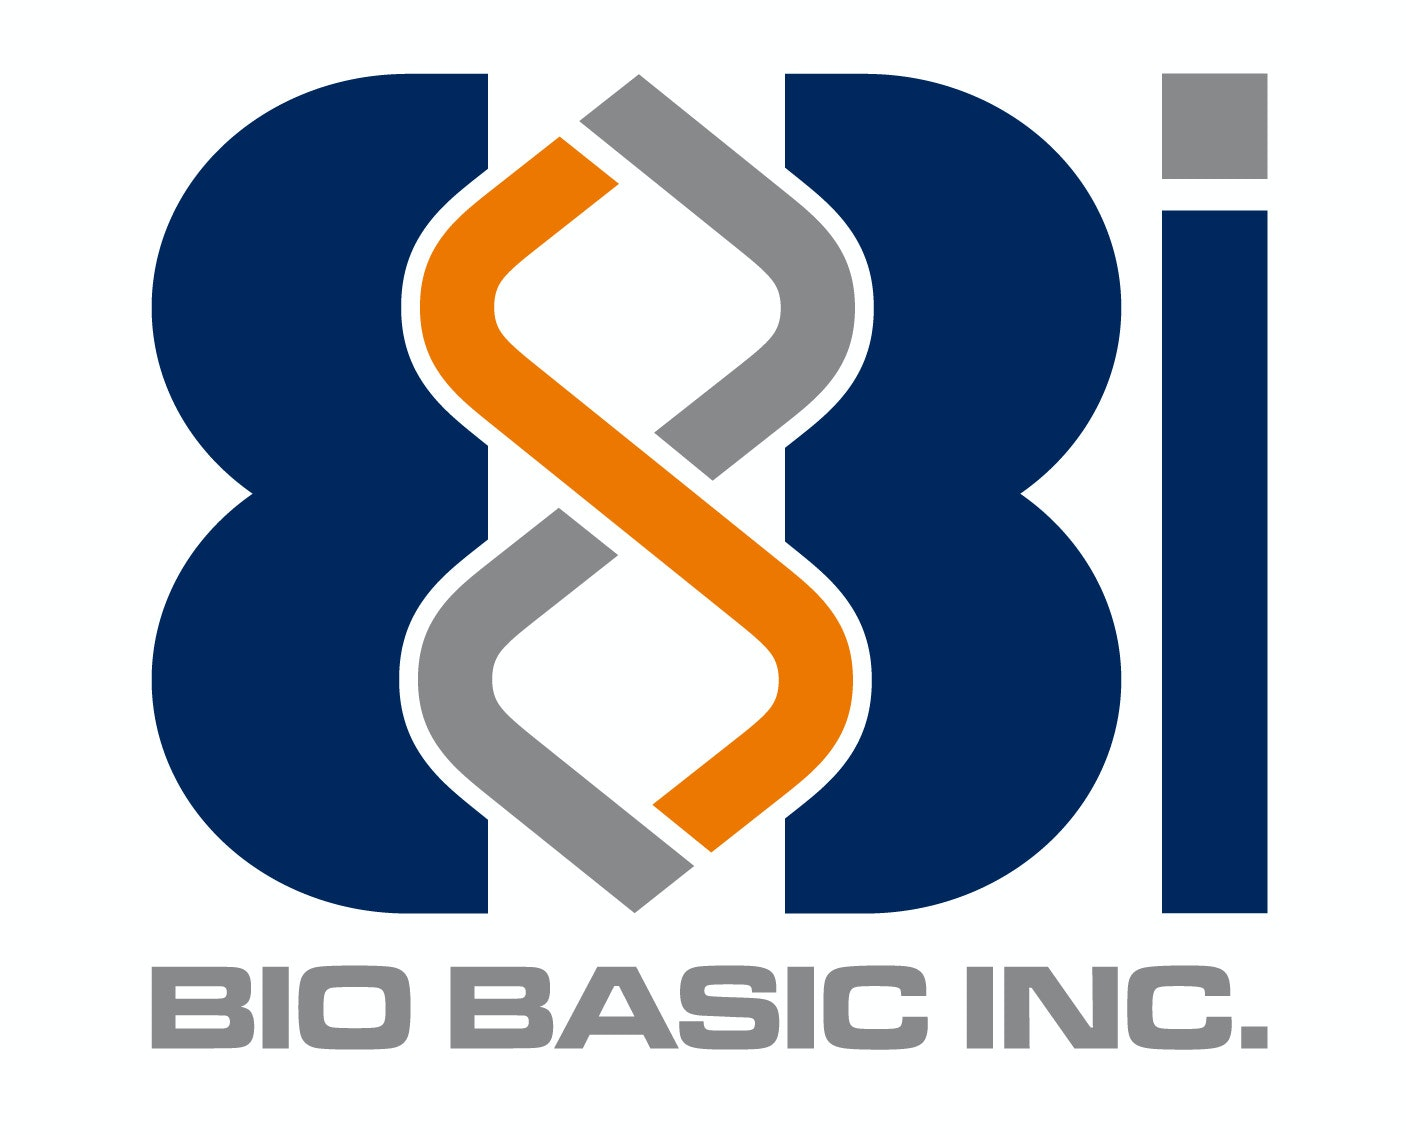 Bio Basic Lab / Facility Logo